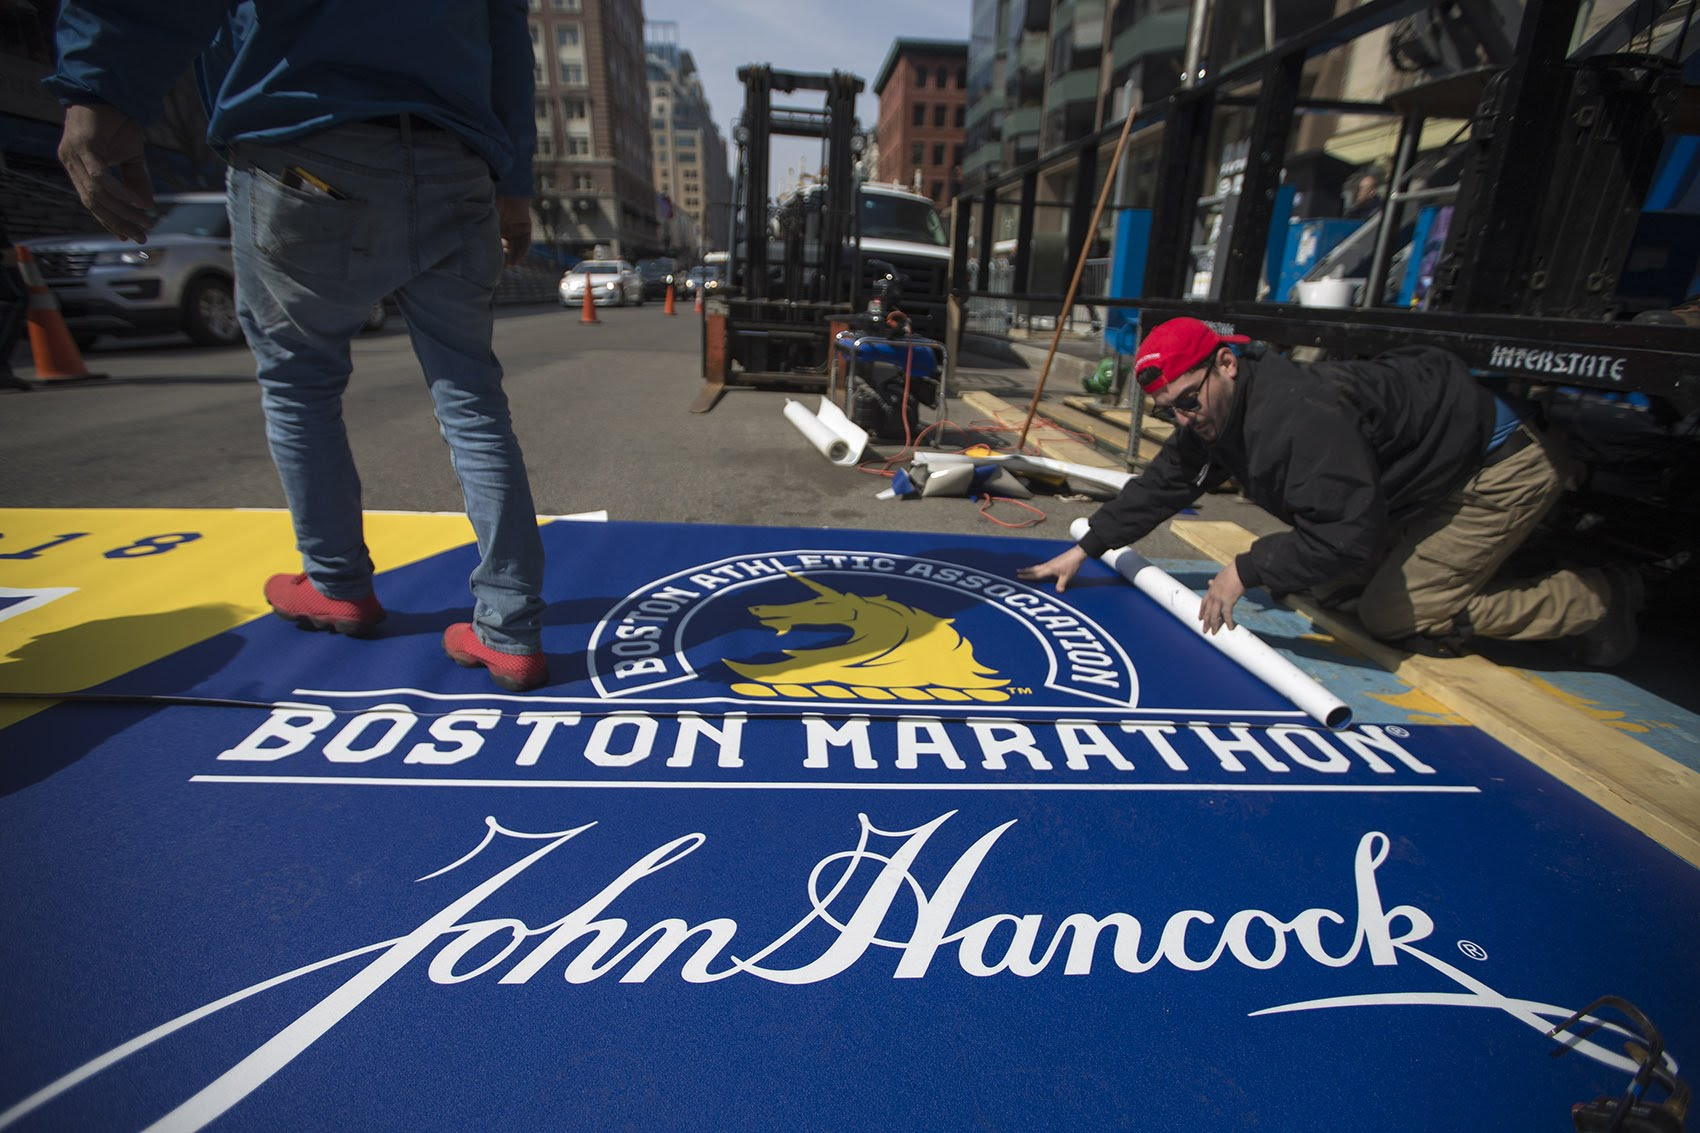 Workers lay down the new finish line for the 2108 Boston Marathon. (Jesse Costa/WBUR)